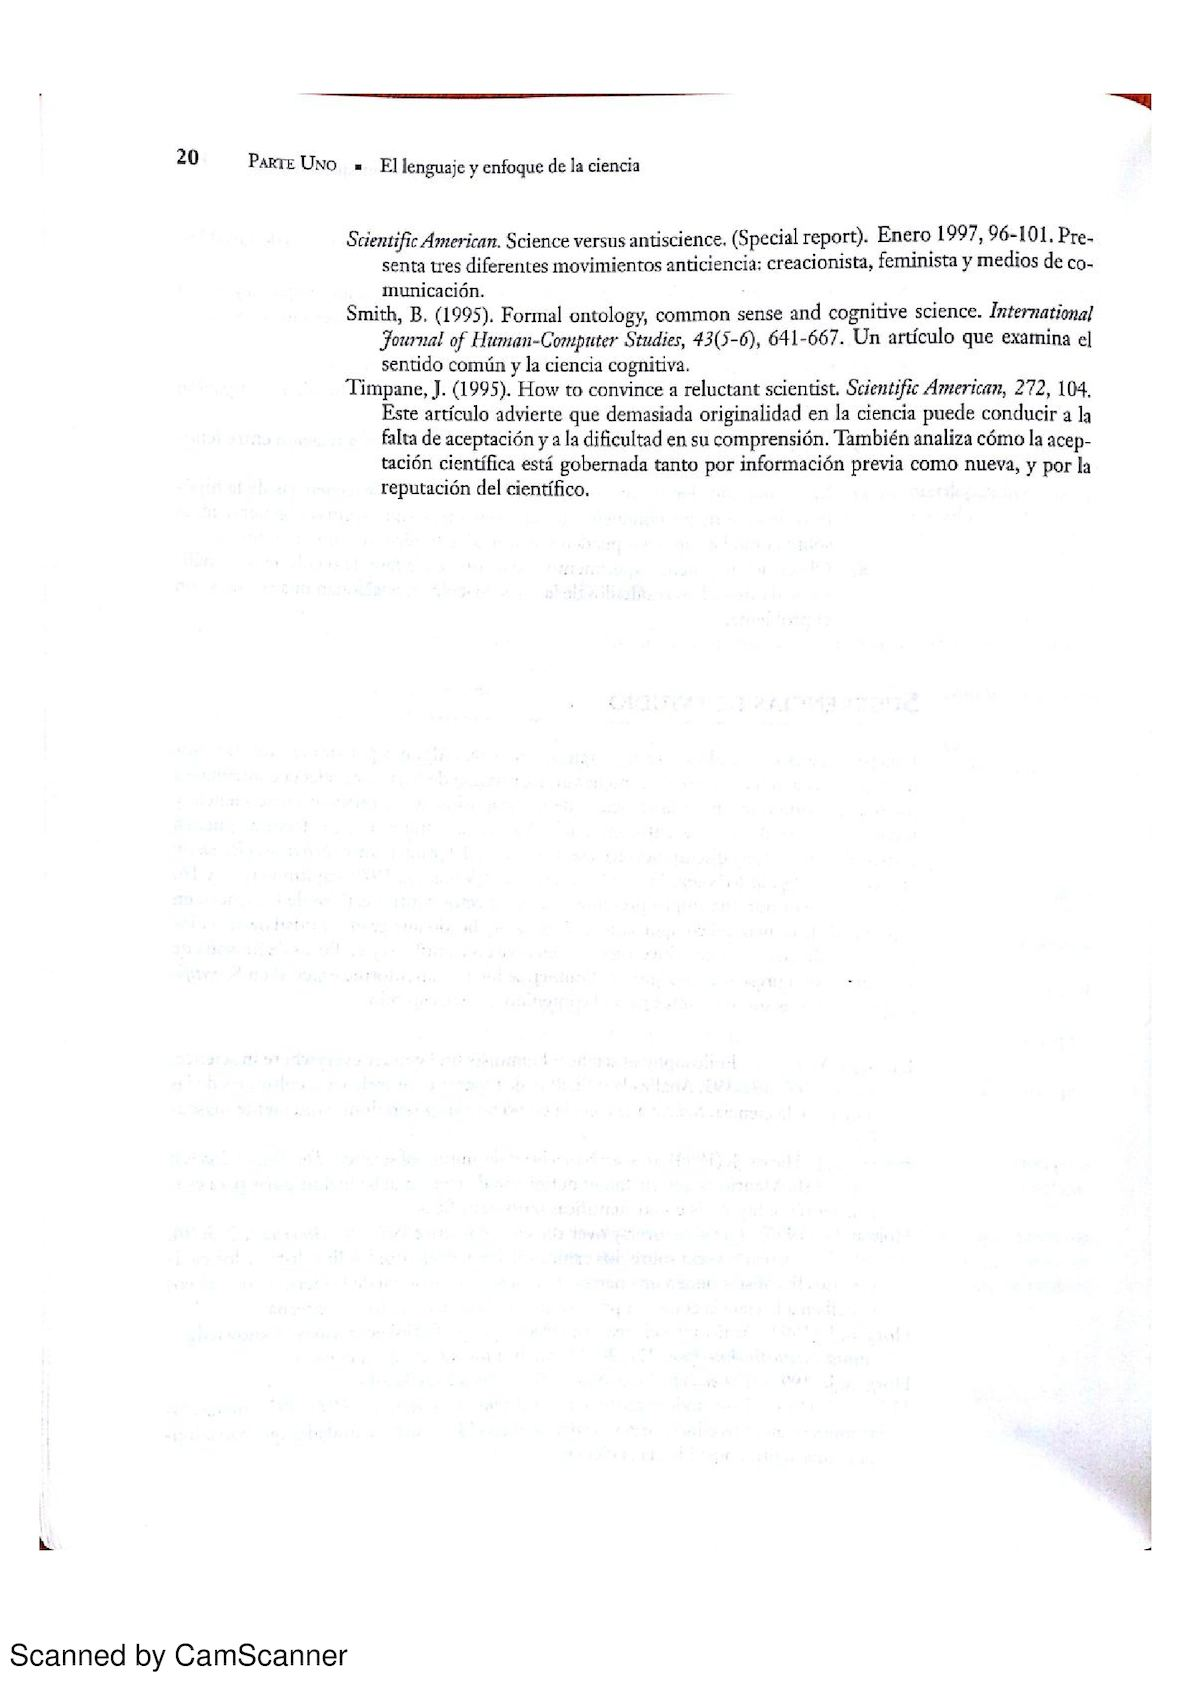 Page 35